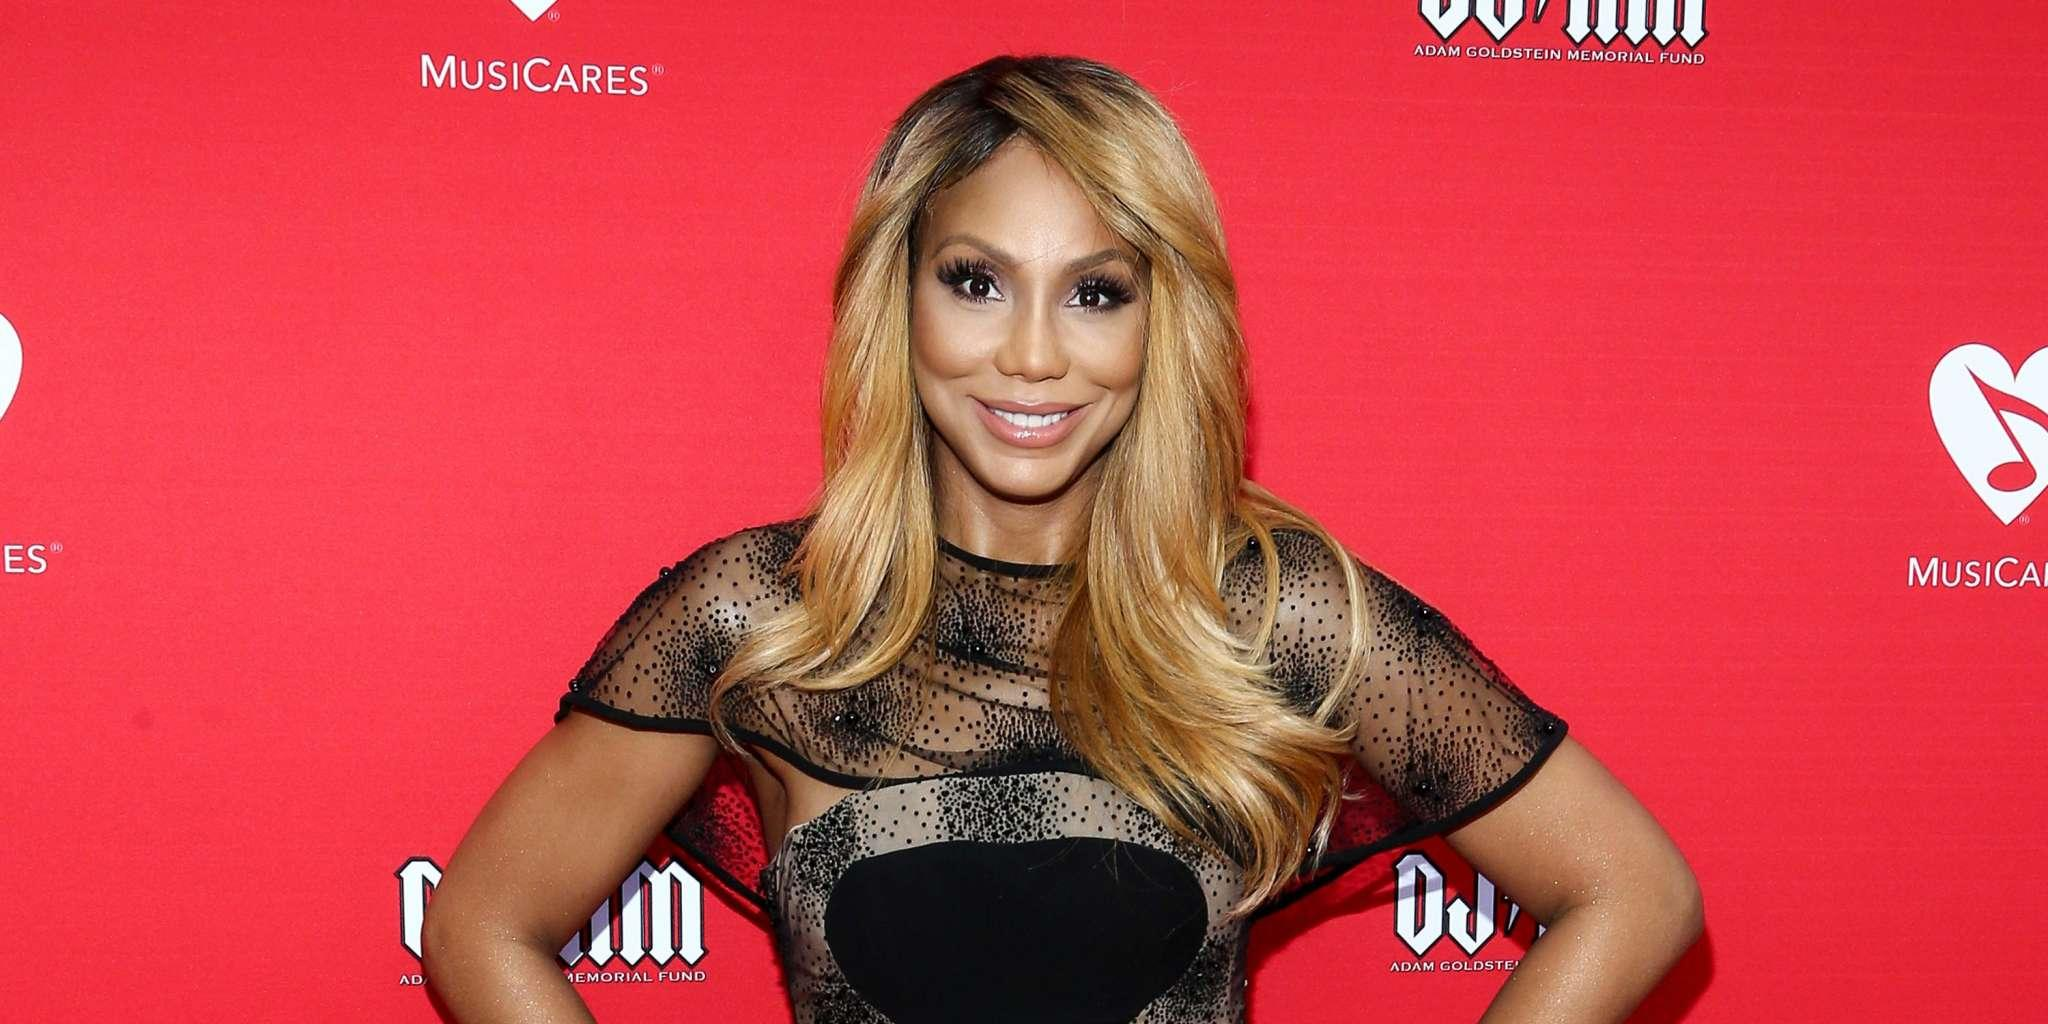 Tamar Braxton Is Preparing A Surprise For Fans - Check It Out Here